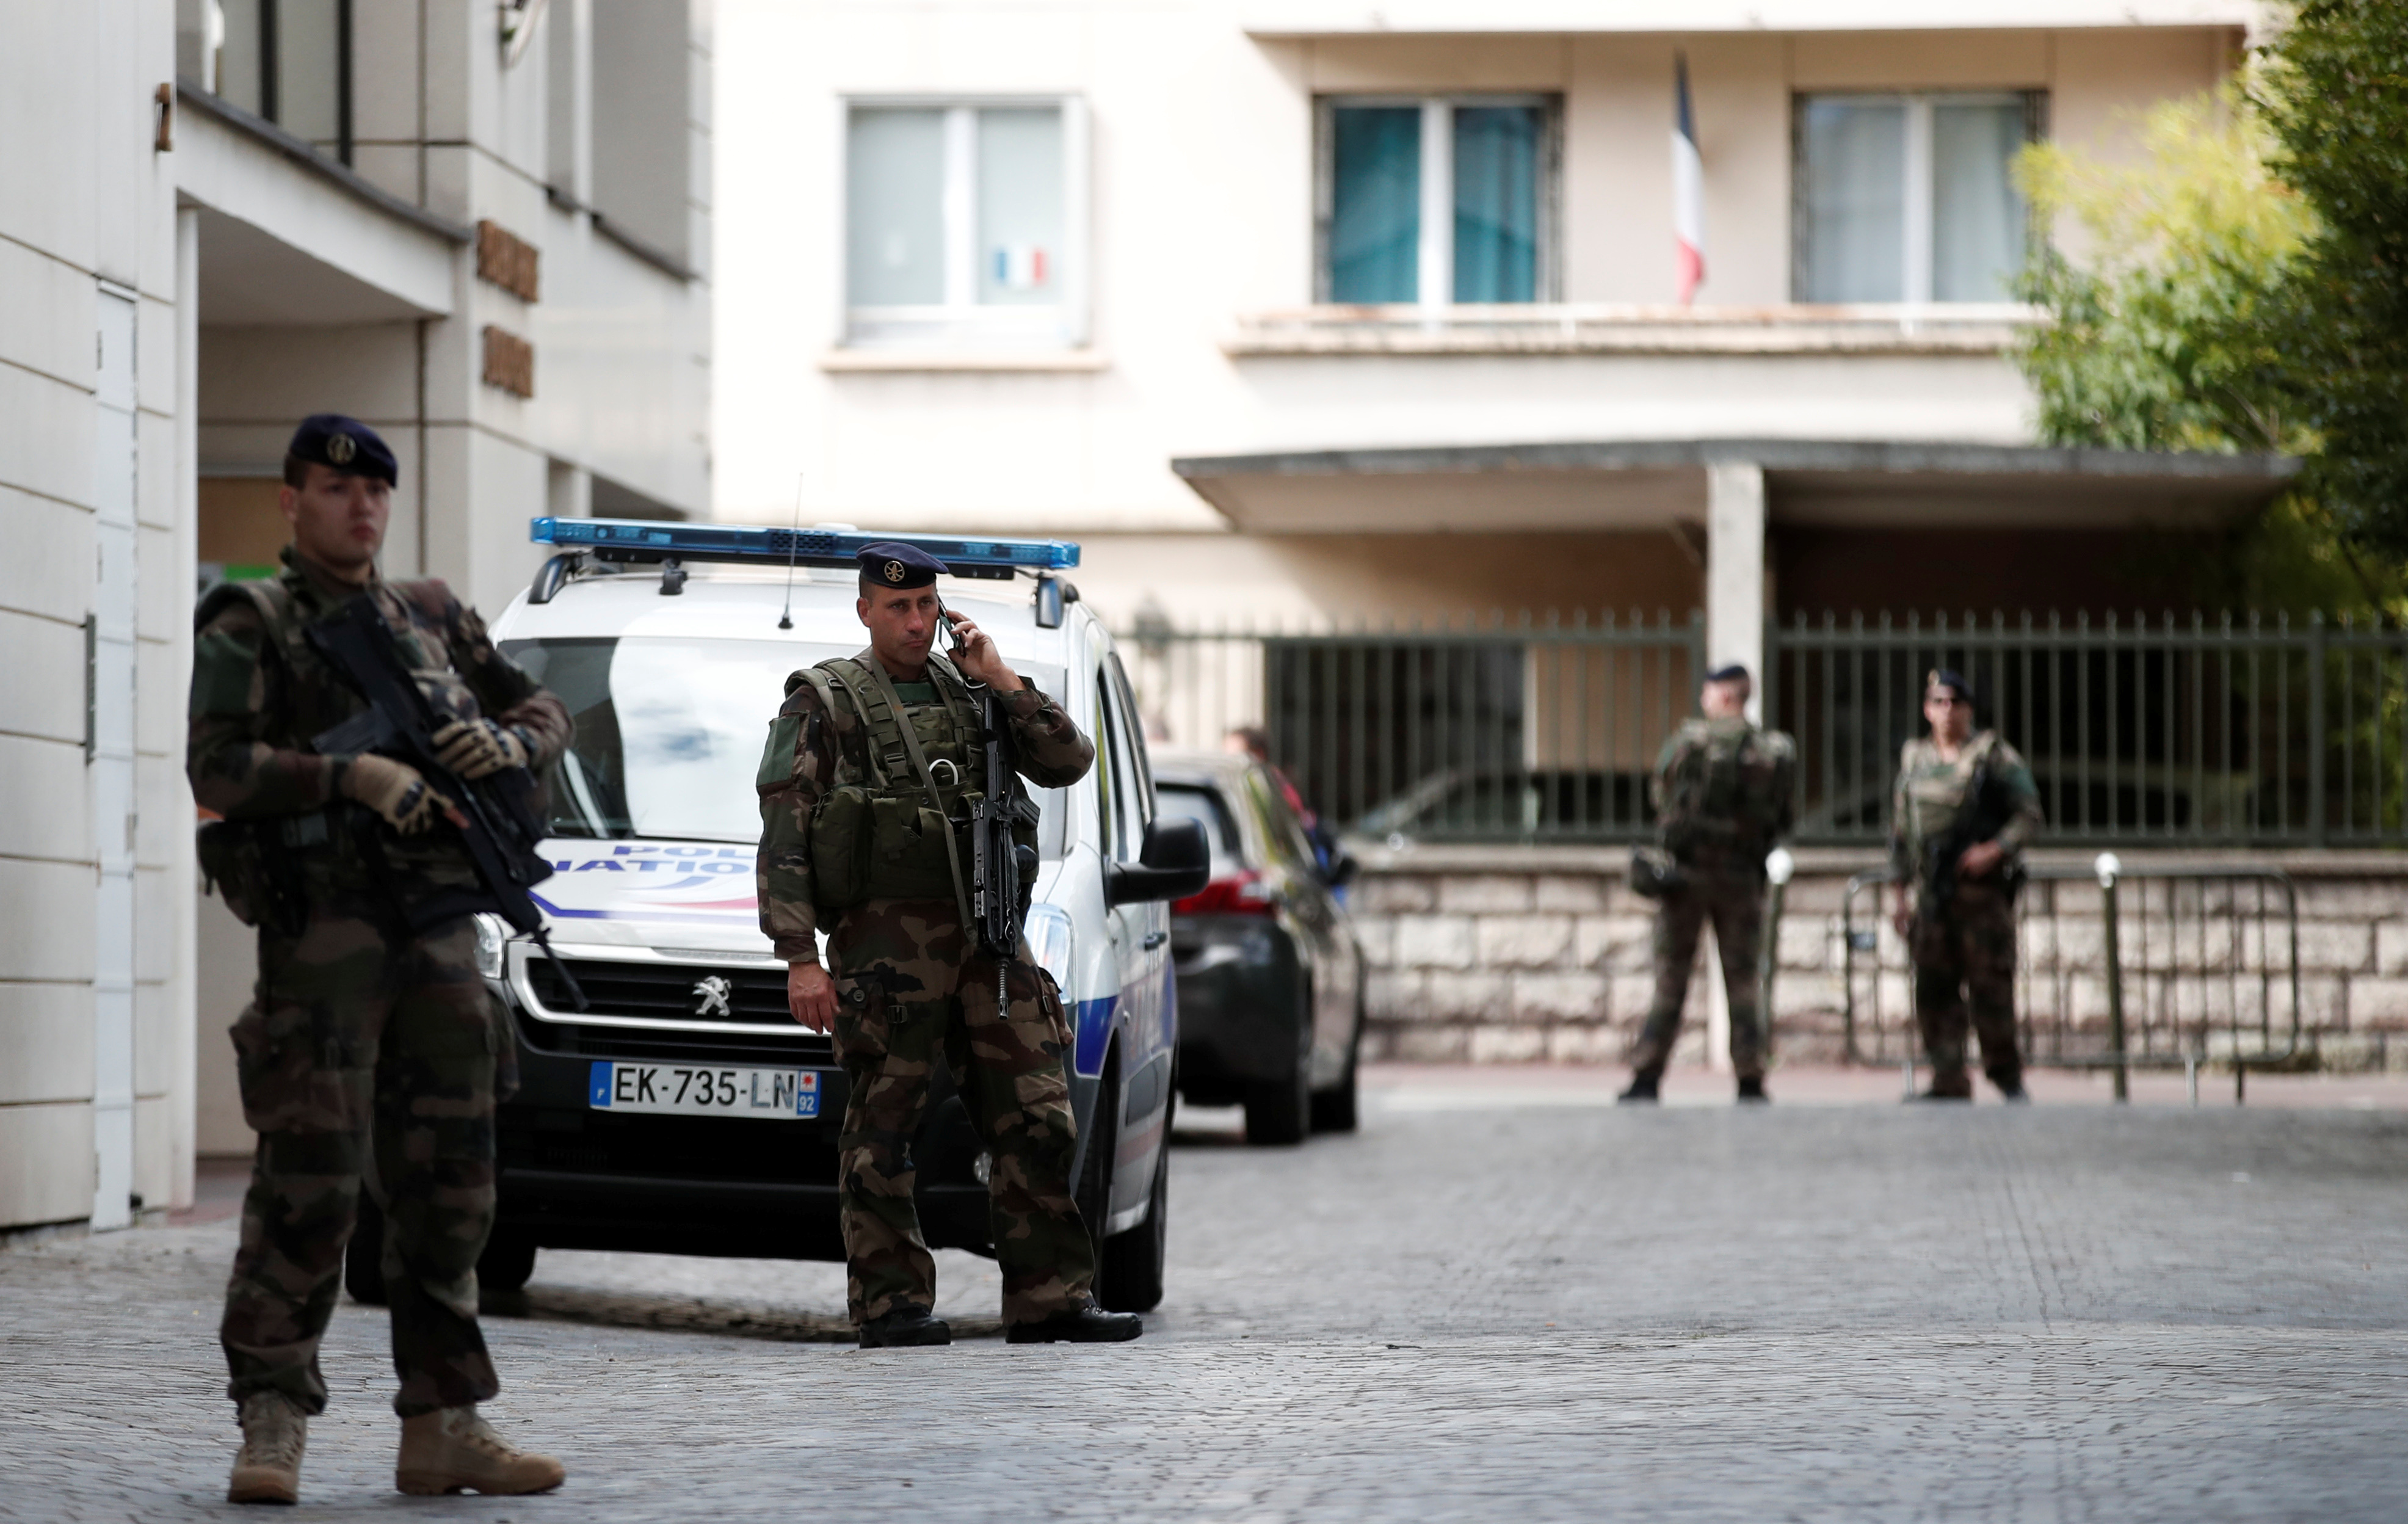 Armed soldiers secure the scene where French soliders were hit and injured by a vehicle in the western Paris suburb of Levallois-Perret, France, August 9, 2017.     REUTERS/Benoit Tessier